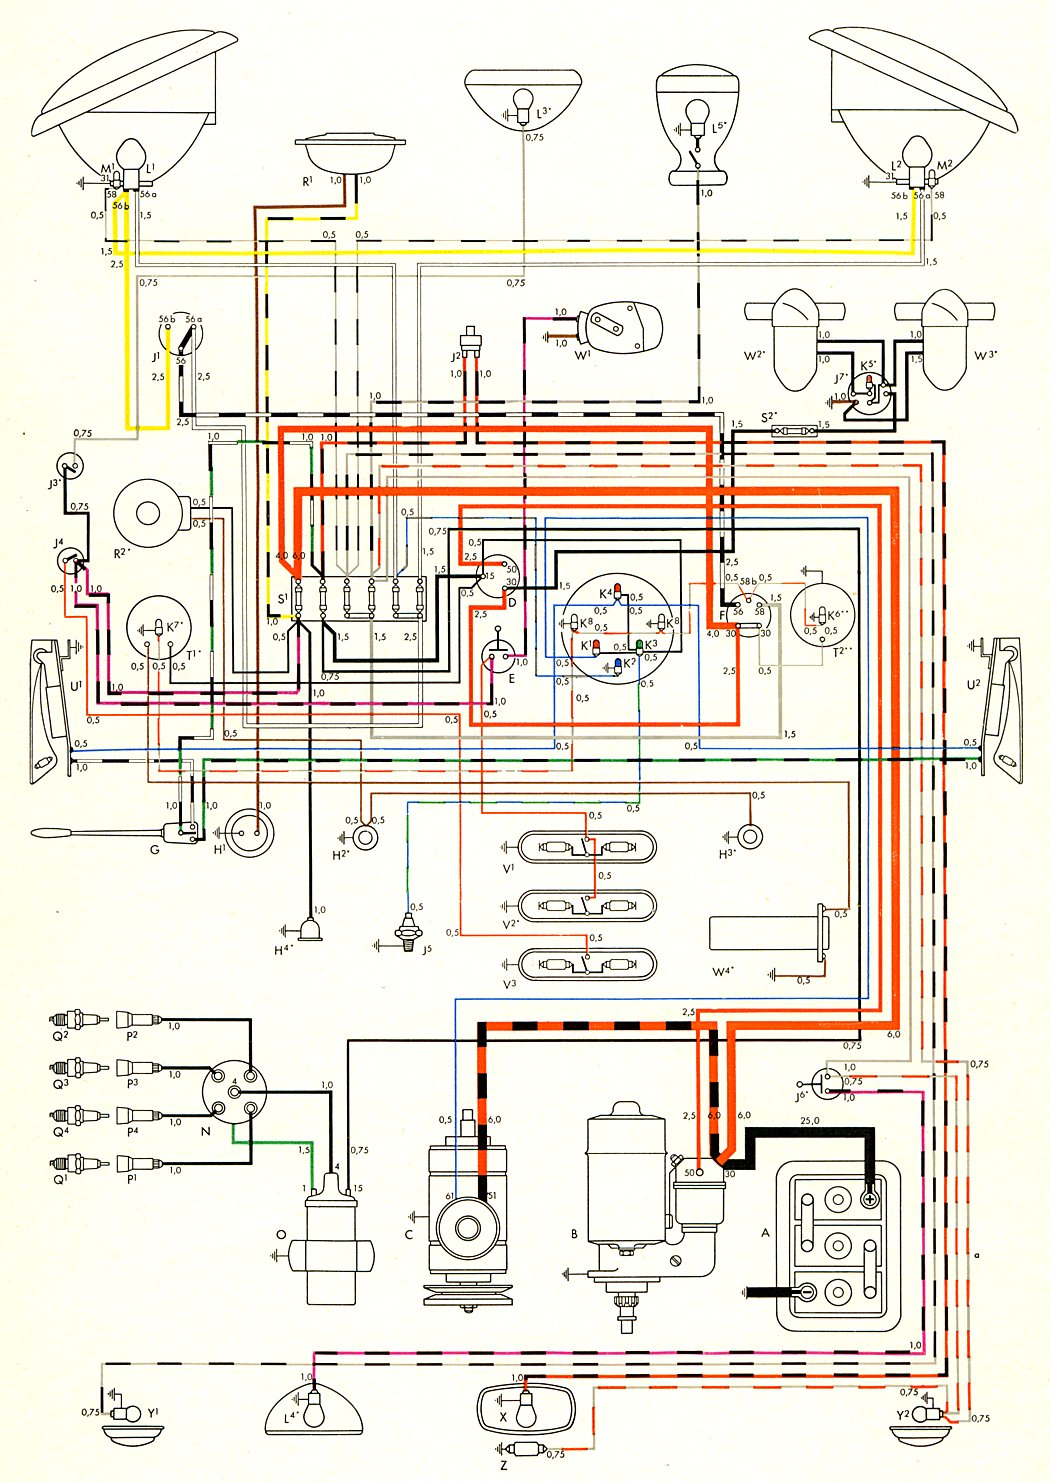 vw bus wiring diagram pdf vw bus wiring diagram jet l